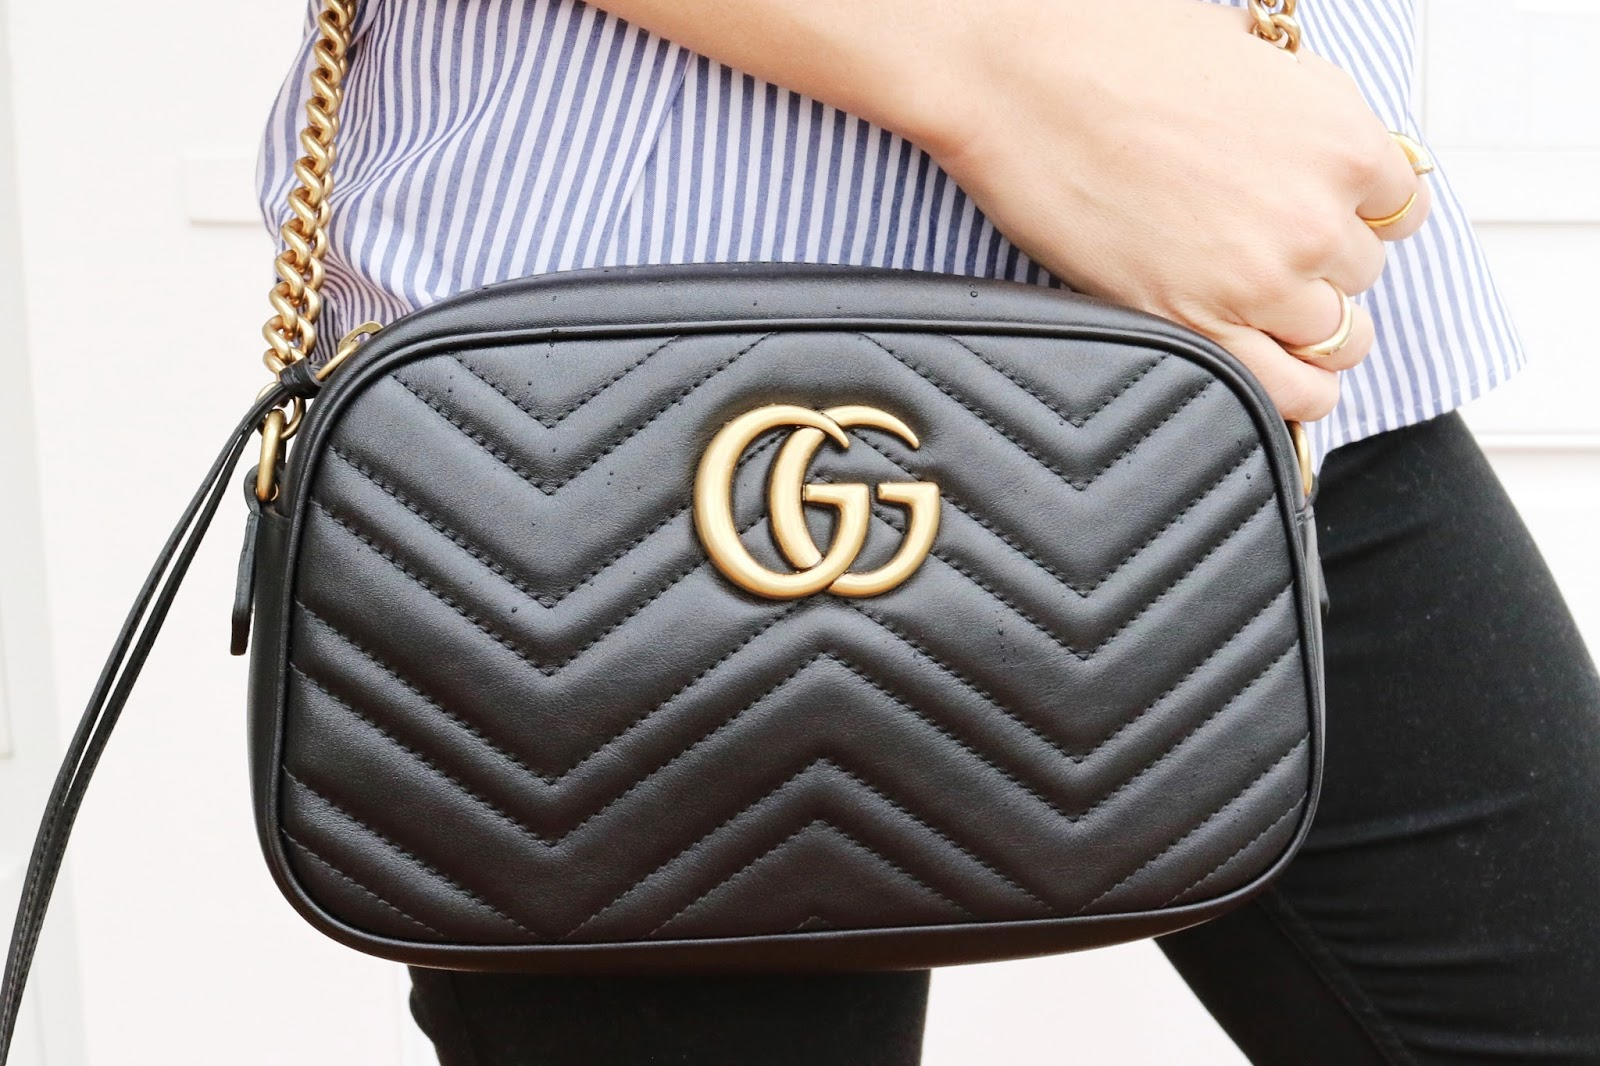 What's In My Bag: Gucci Marmont Camera Bag Review